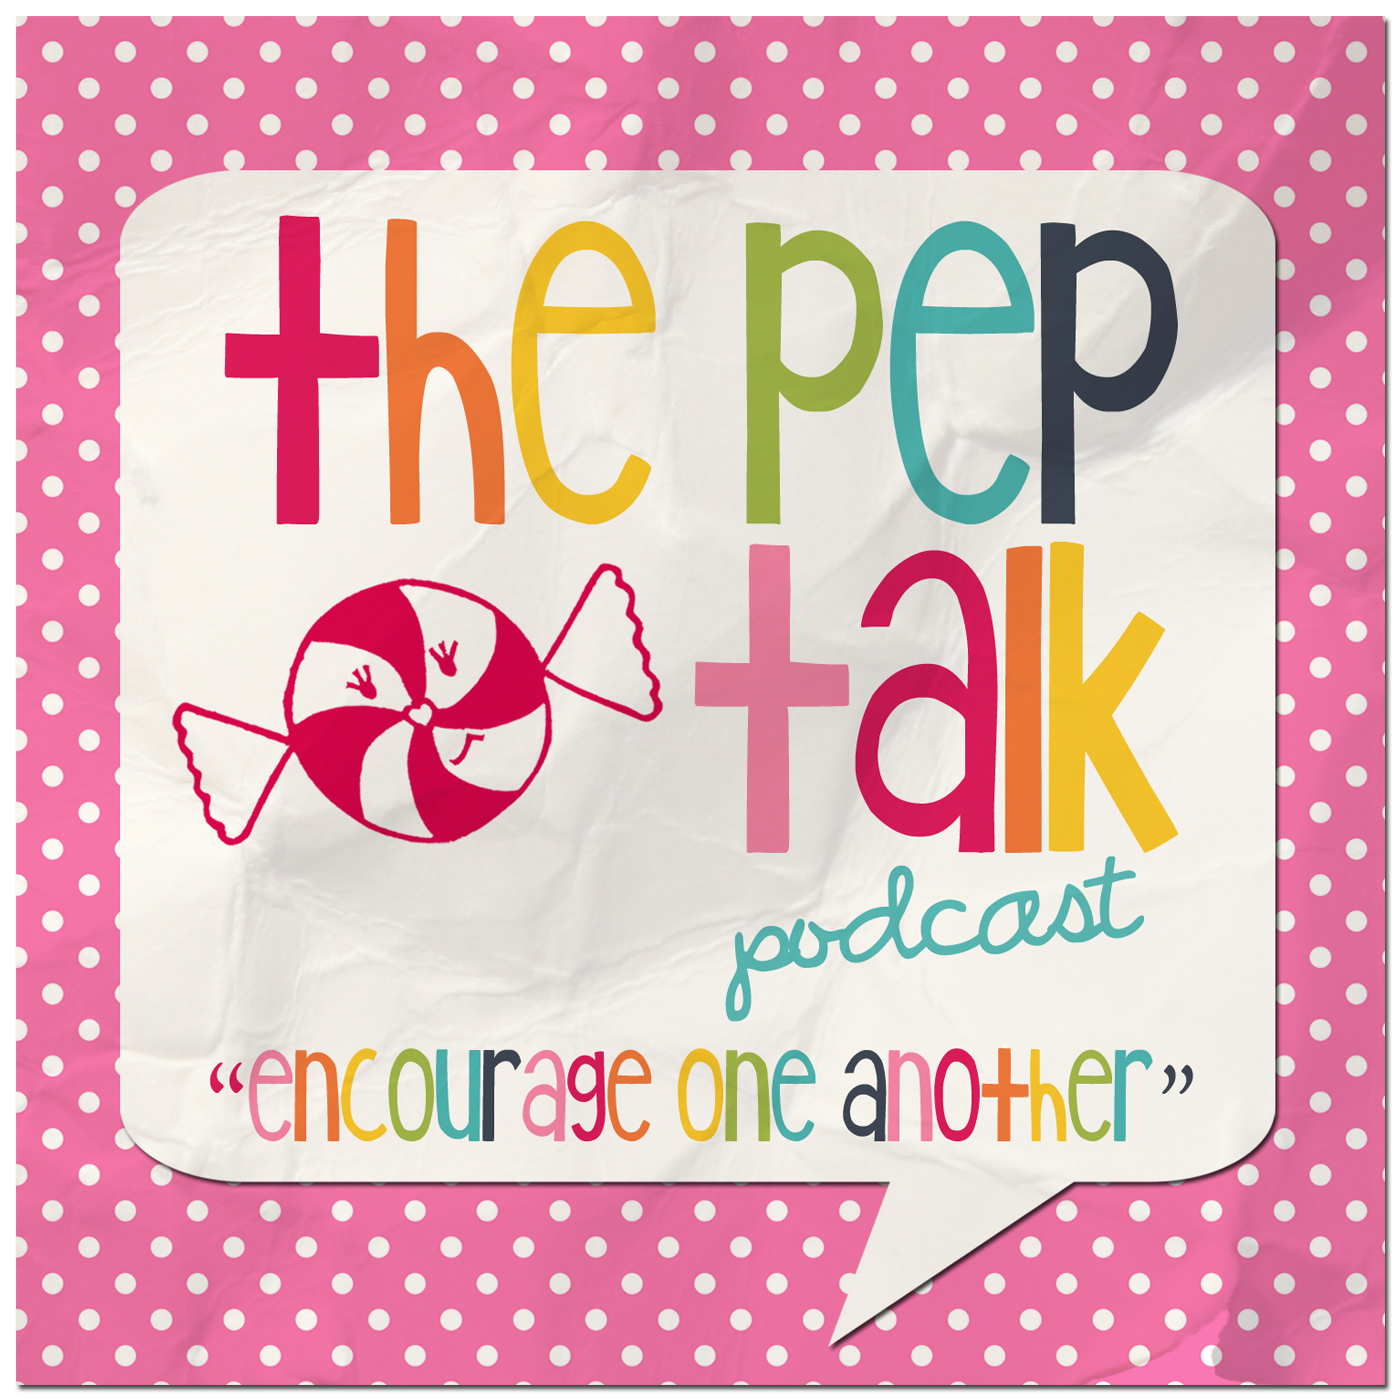 002 rest jeannie fulbright and kerry beck podcast pink paper thepeptalkpodcast at pink paper peppermints fandeluxe PDF